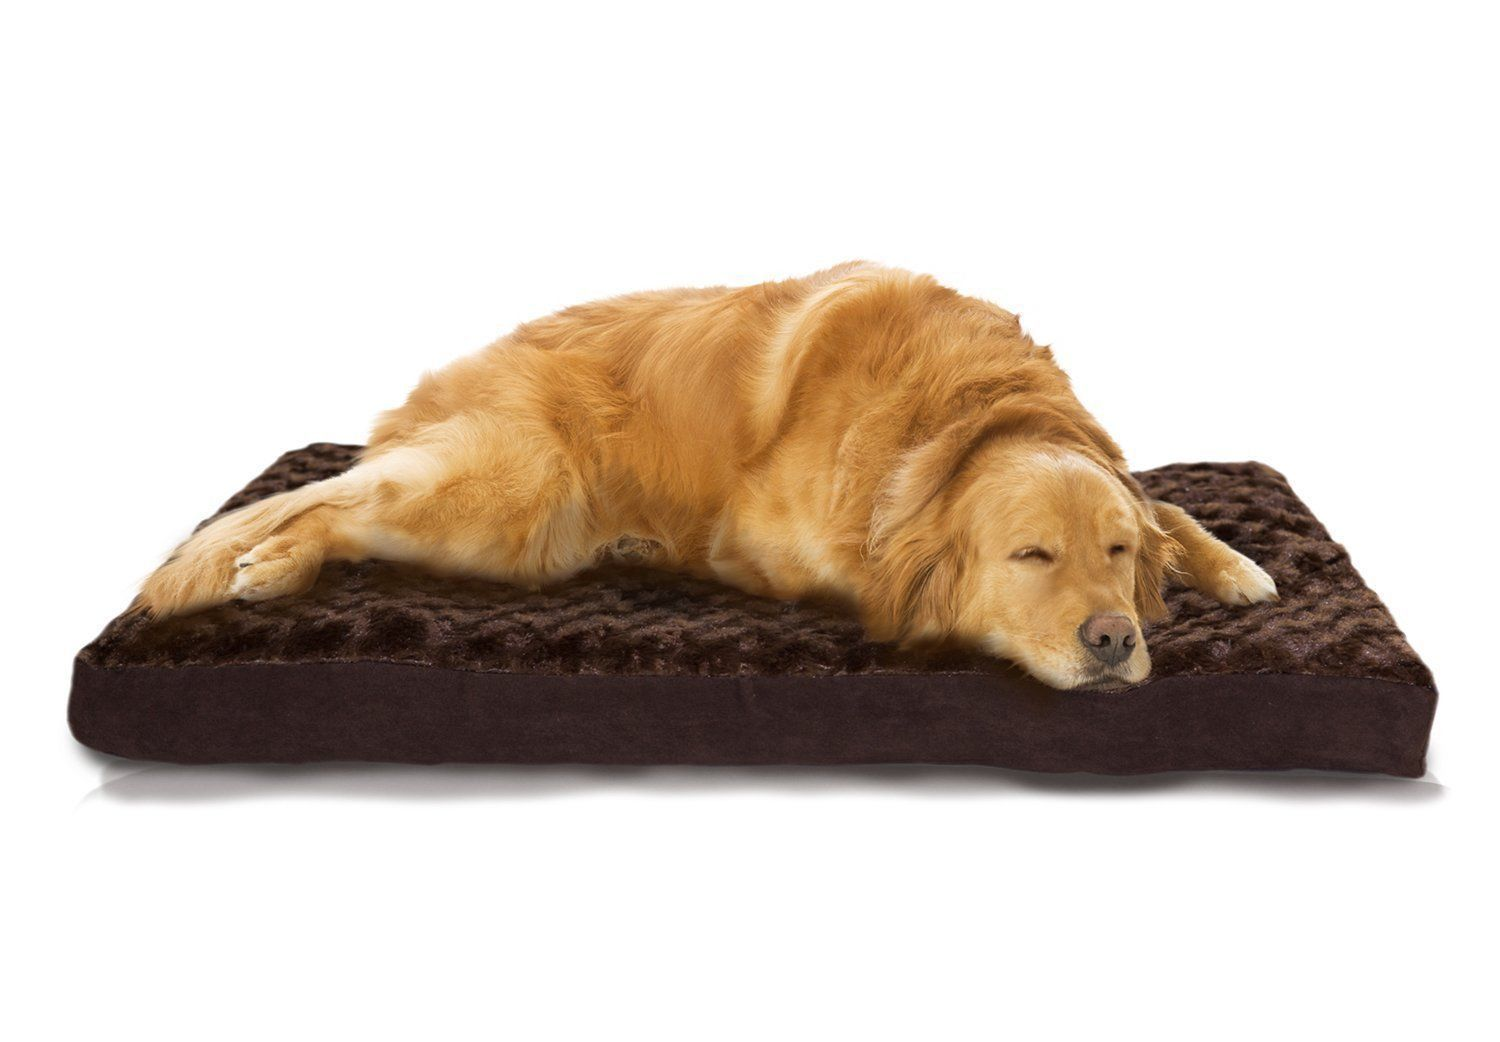 Extra large orthopedic dog beds best price - Furhaven Orthopedic Mattress Pet Bed Jumbo Chocolate For Dogs And Cats